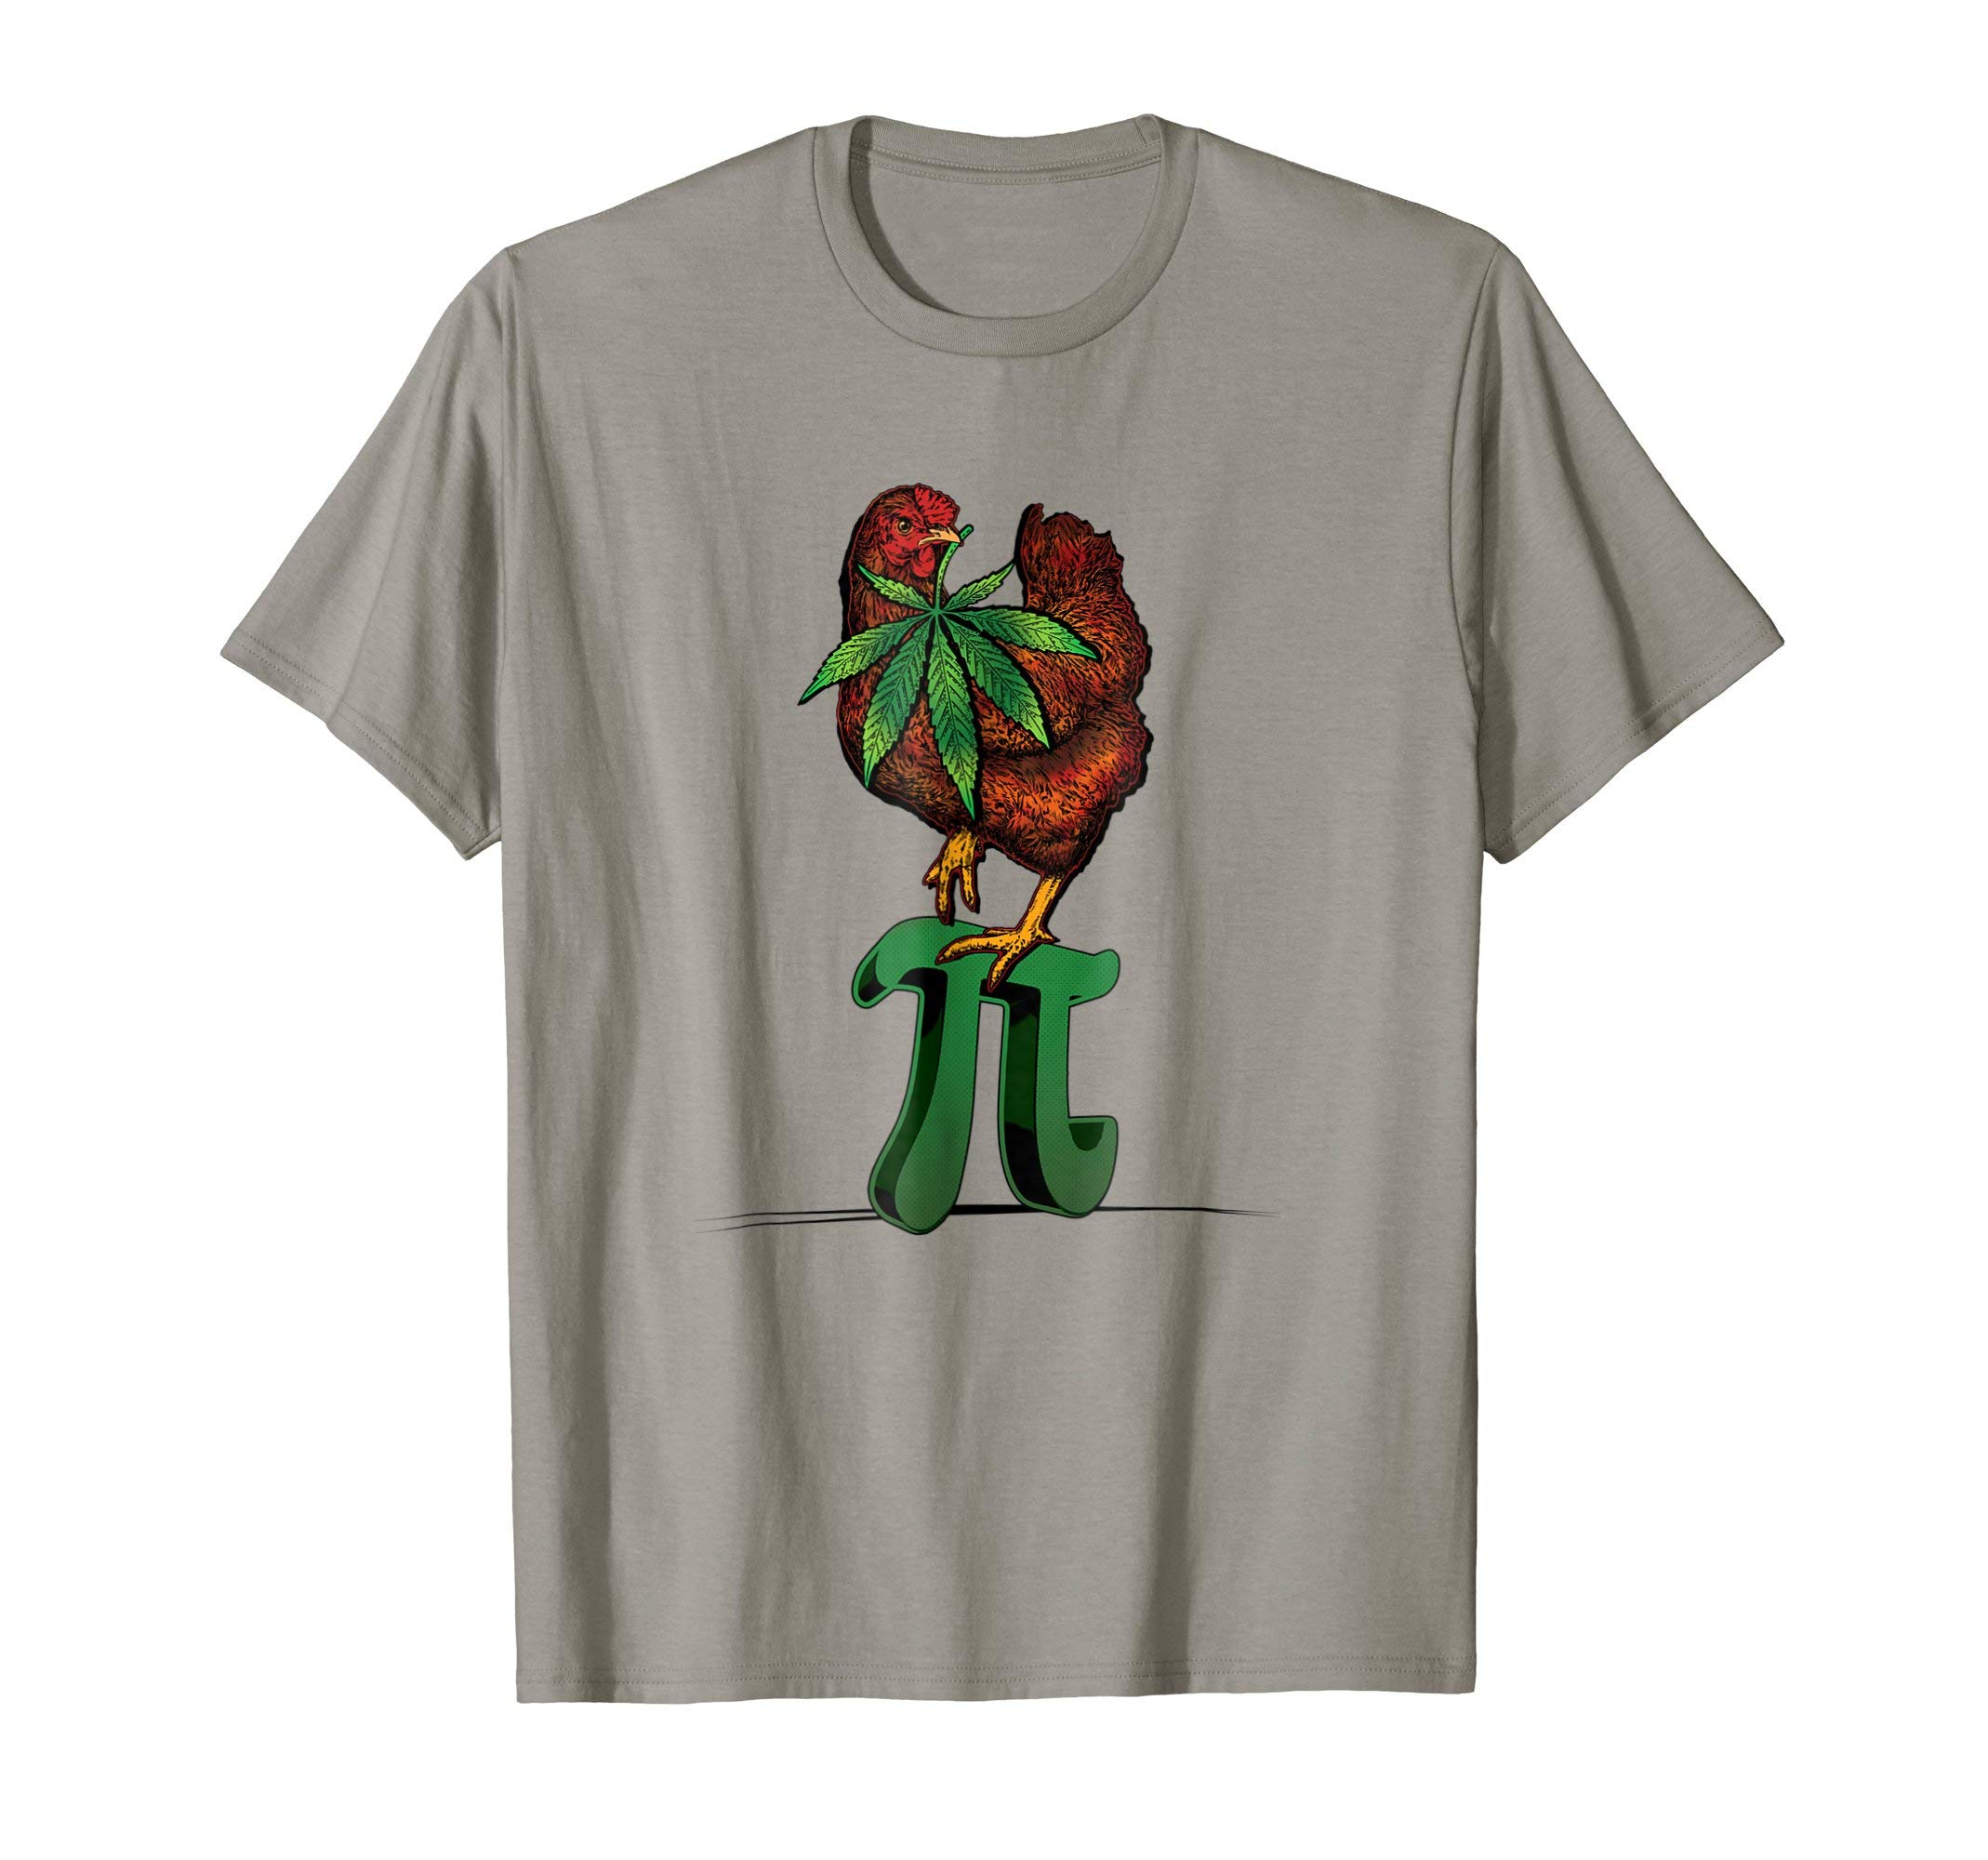 Funny Weed Chicken Pot Pi Stoner Cannabis Math T-Shirt